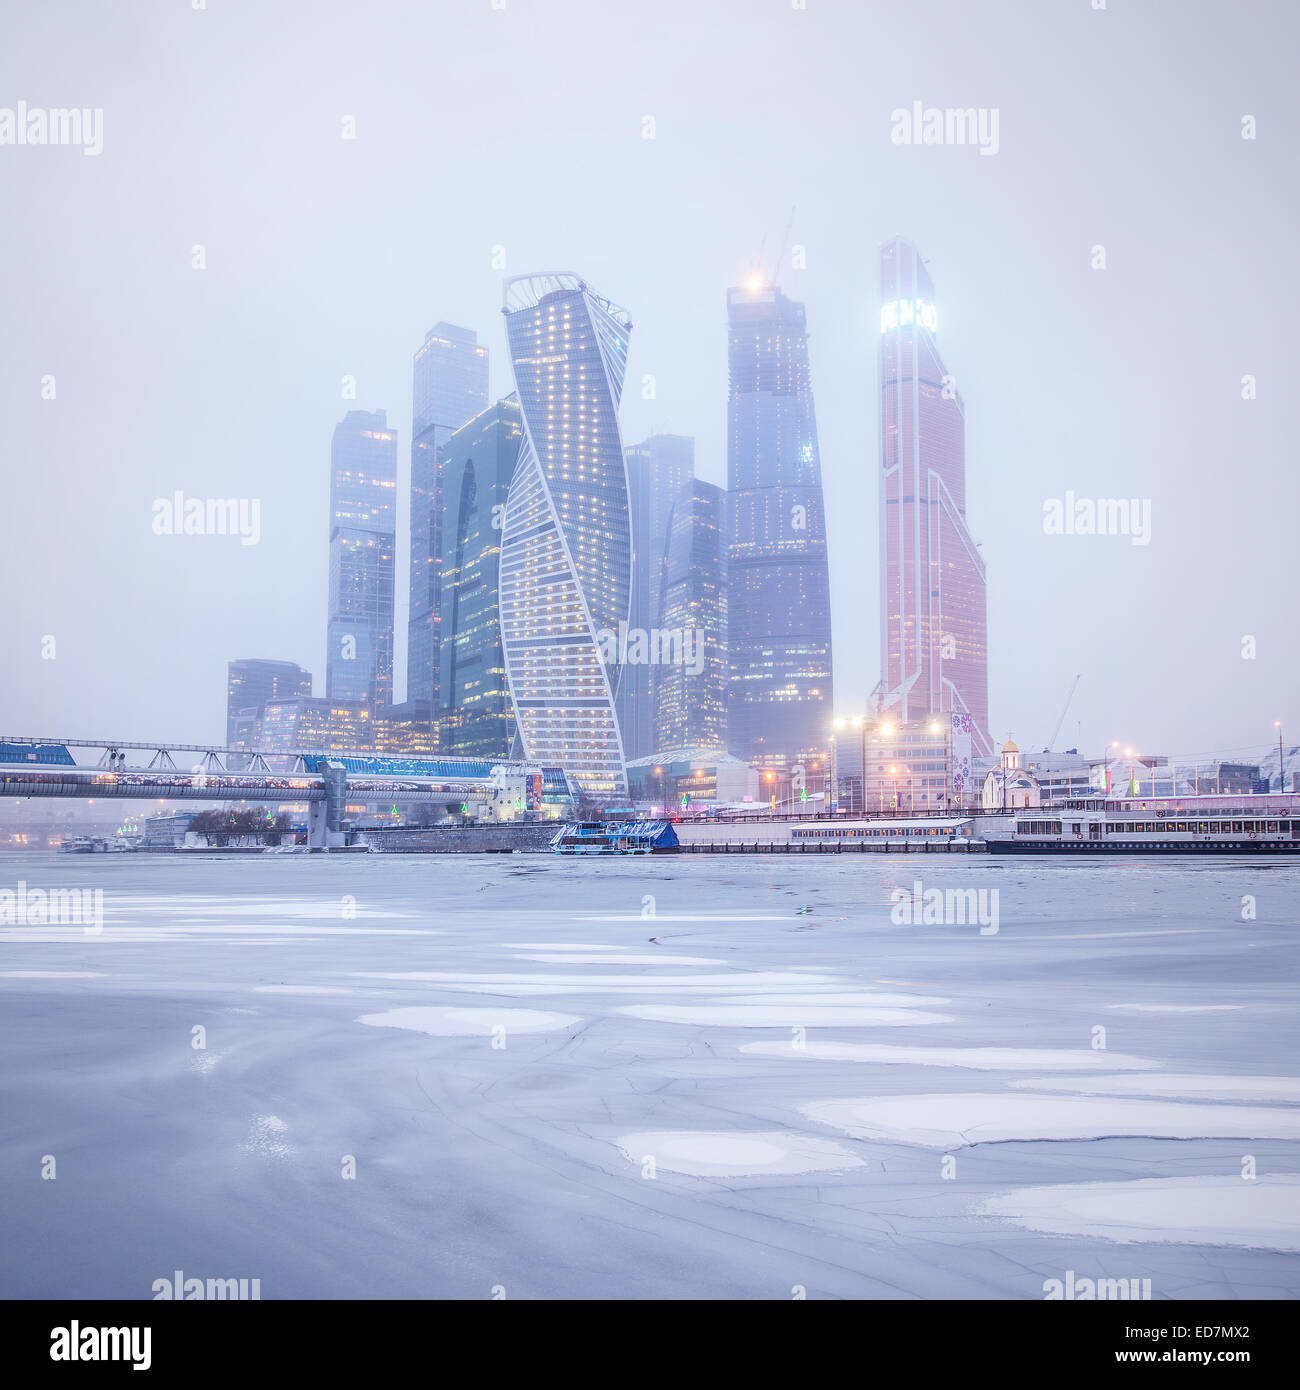 Winter view of the business center under the snowfall and fog. Moscow. Russia. - Stock Image